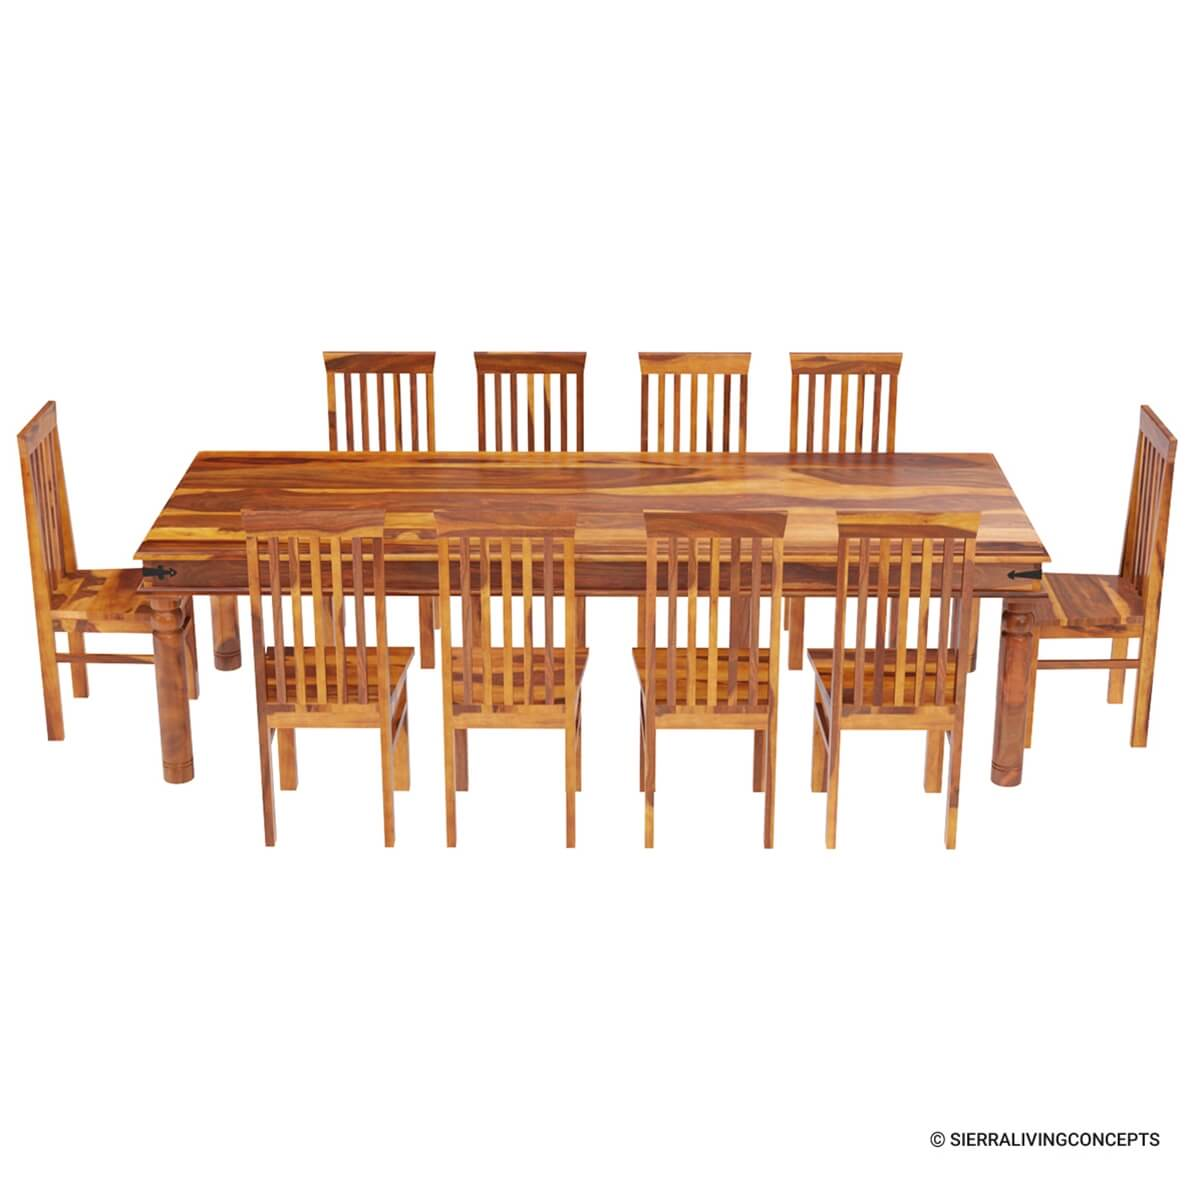 e30a0c9289f Rustic Lincoln Study Large Dining Room Table Chair Set For 10 People